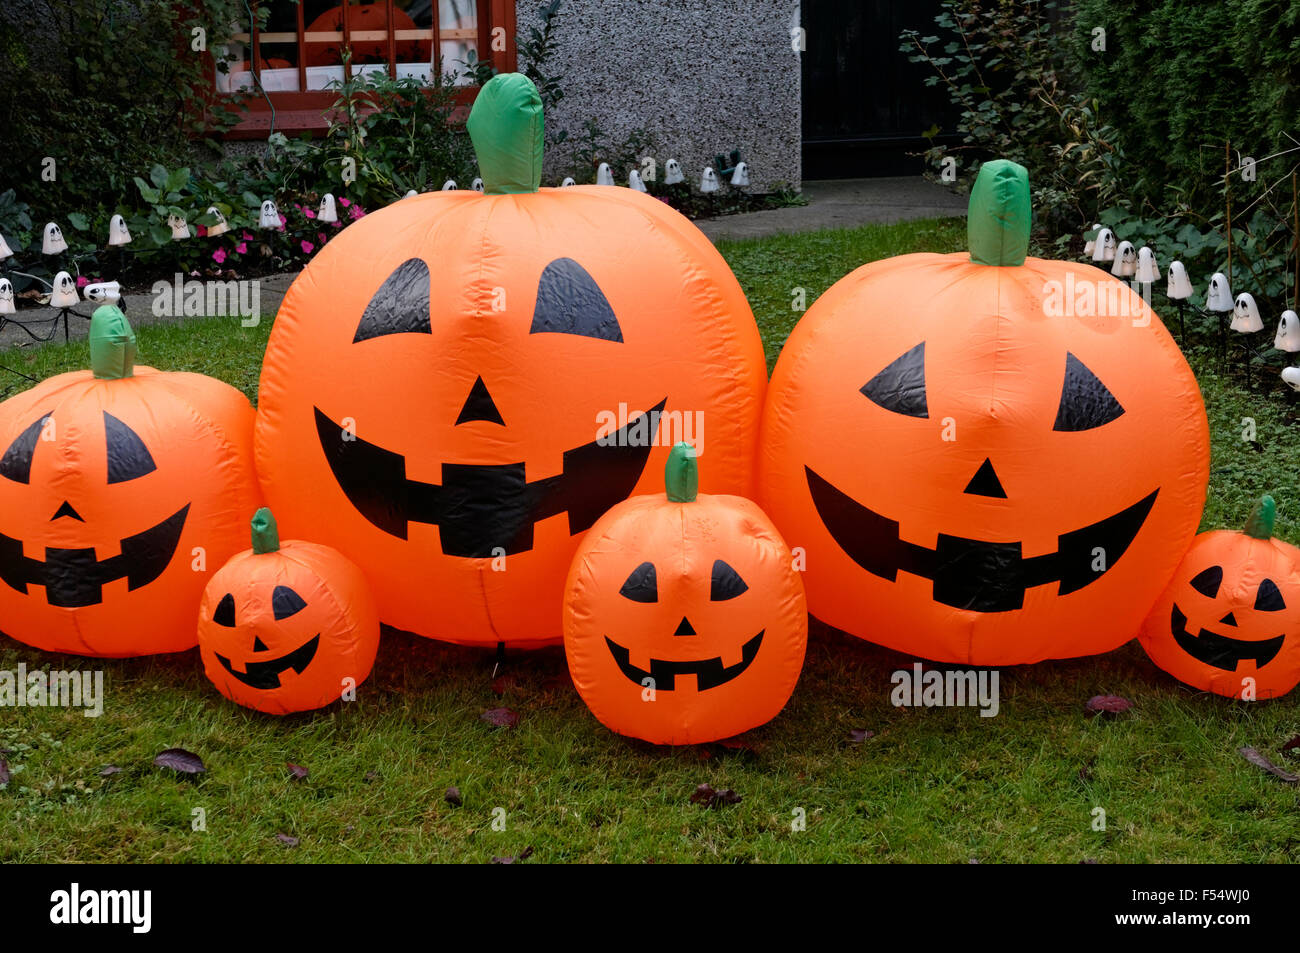 Inflatable plastic Halloween pumpkins on the front lawn of a house, Vancouver, BC, Canada - Stock Image